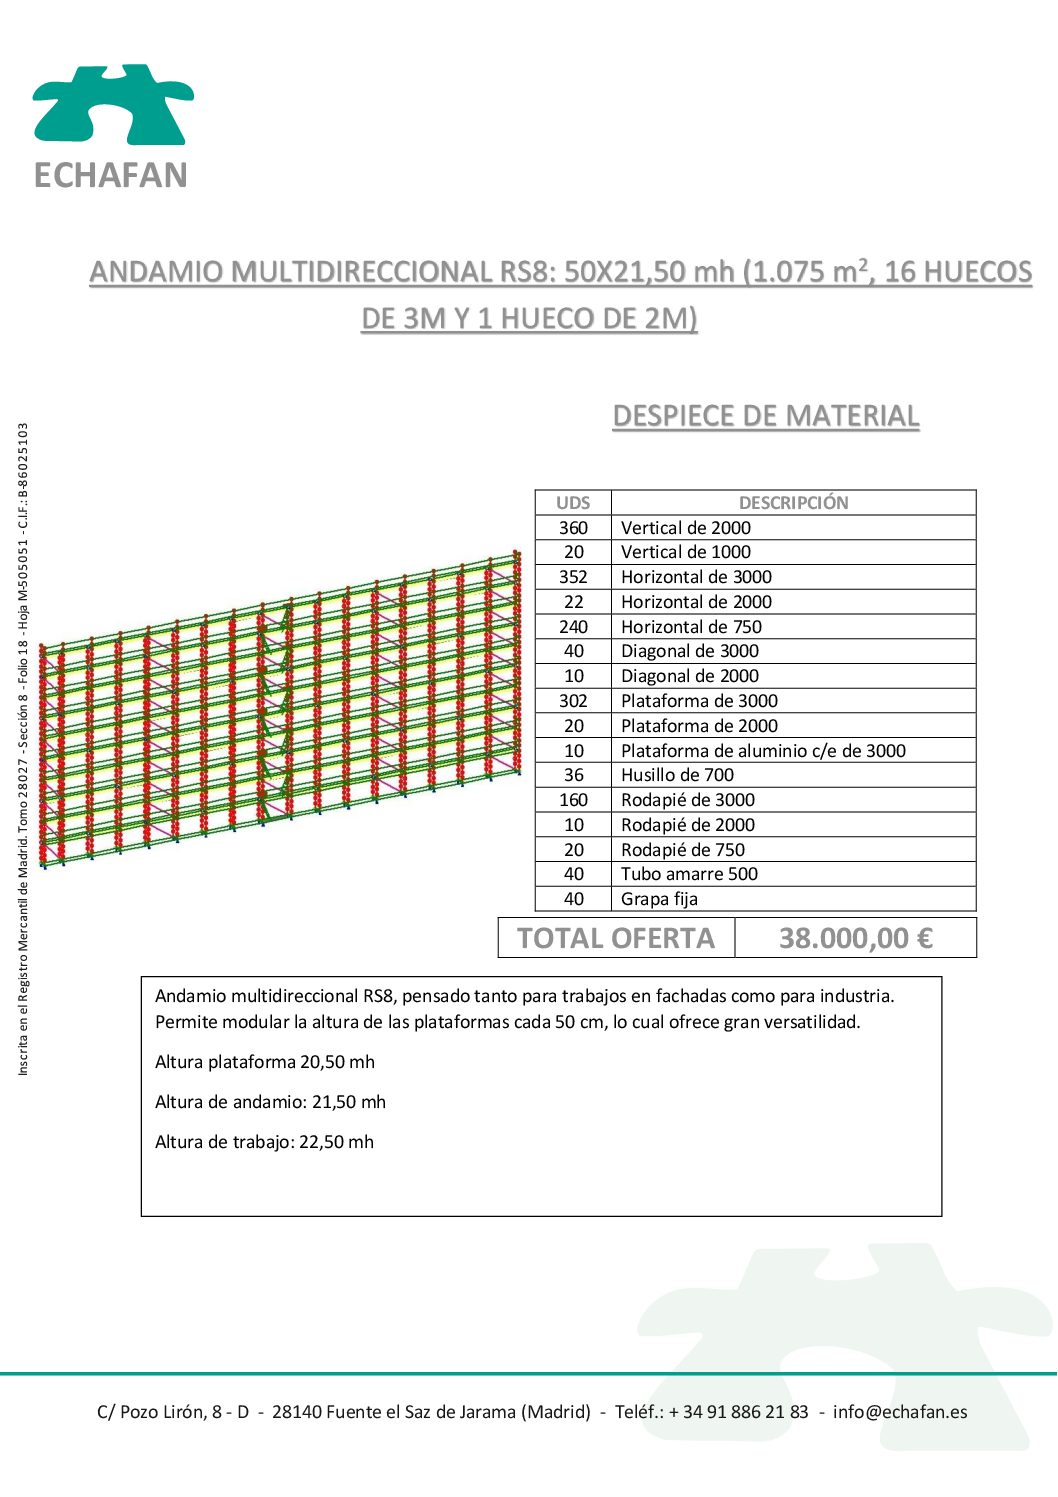 ANDAMIO MULTIDIRECCIONAL 50x21,50 - 38